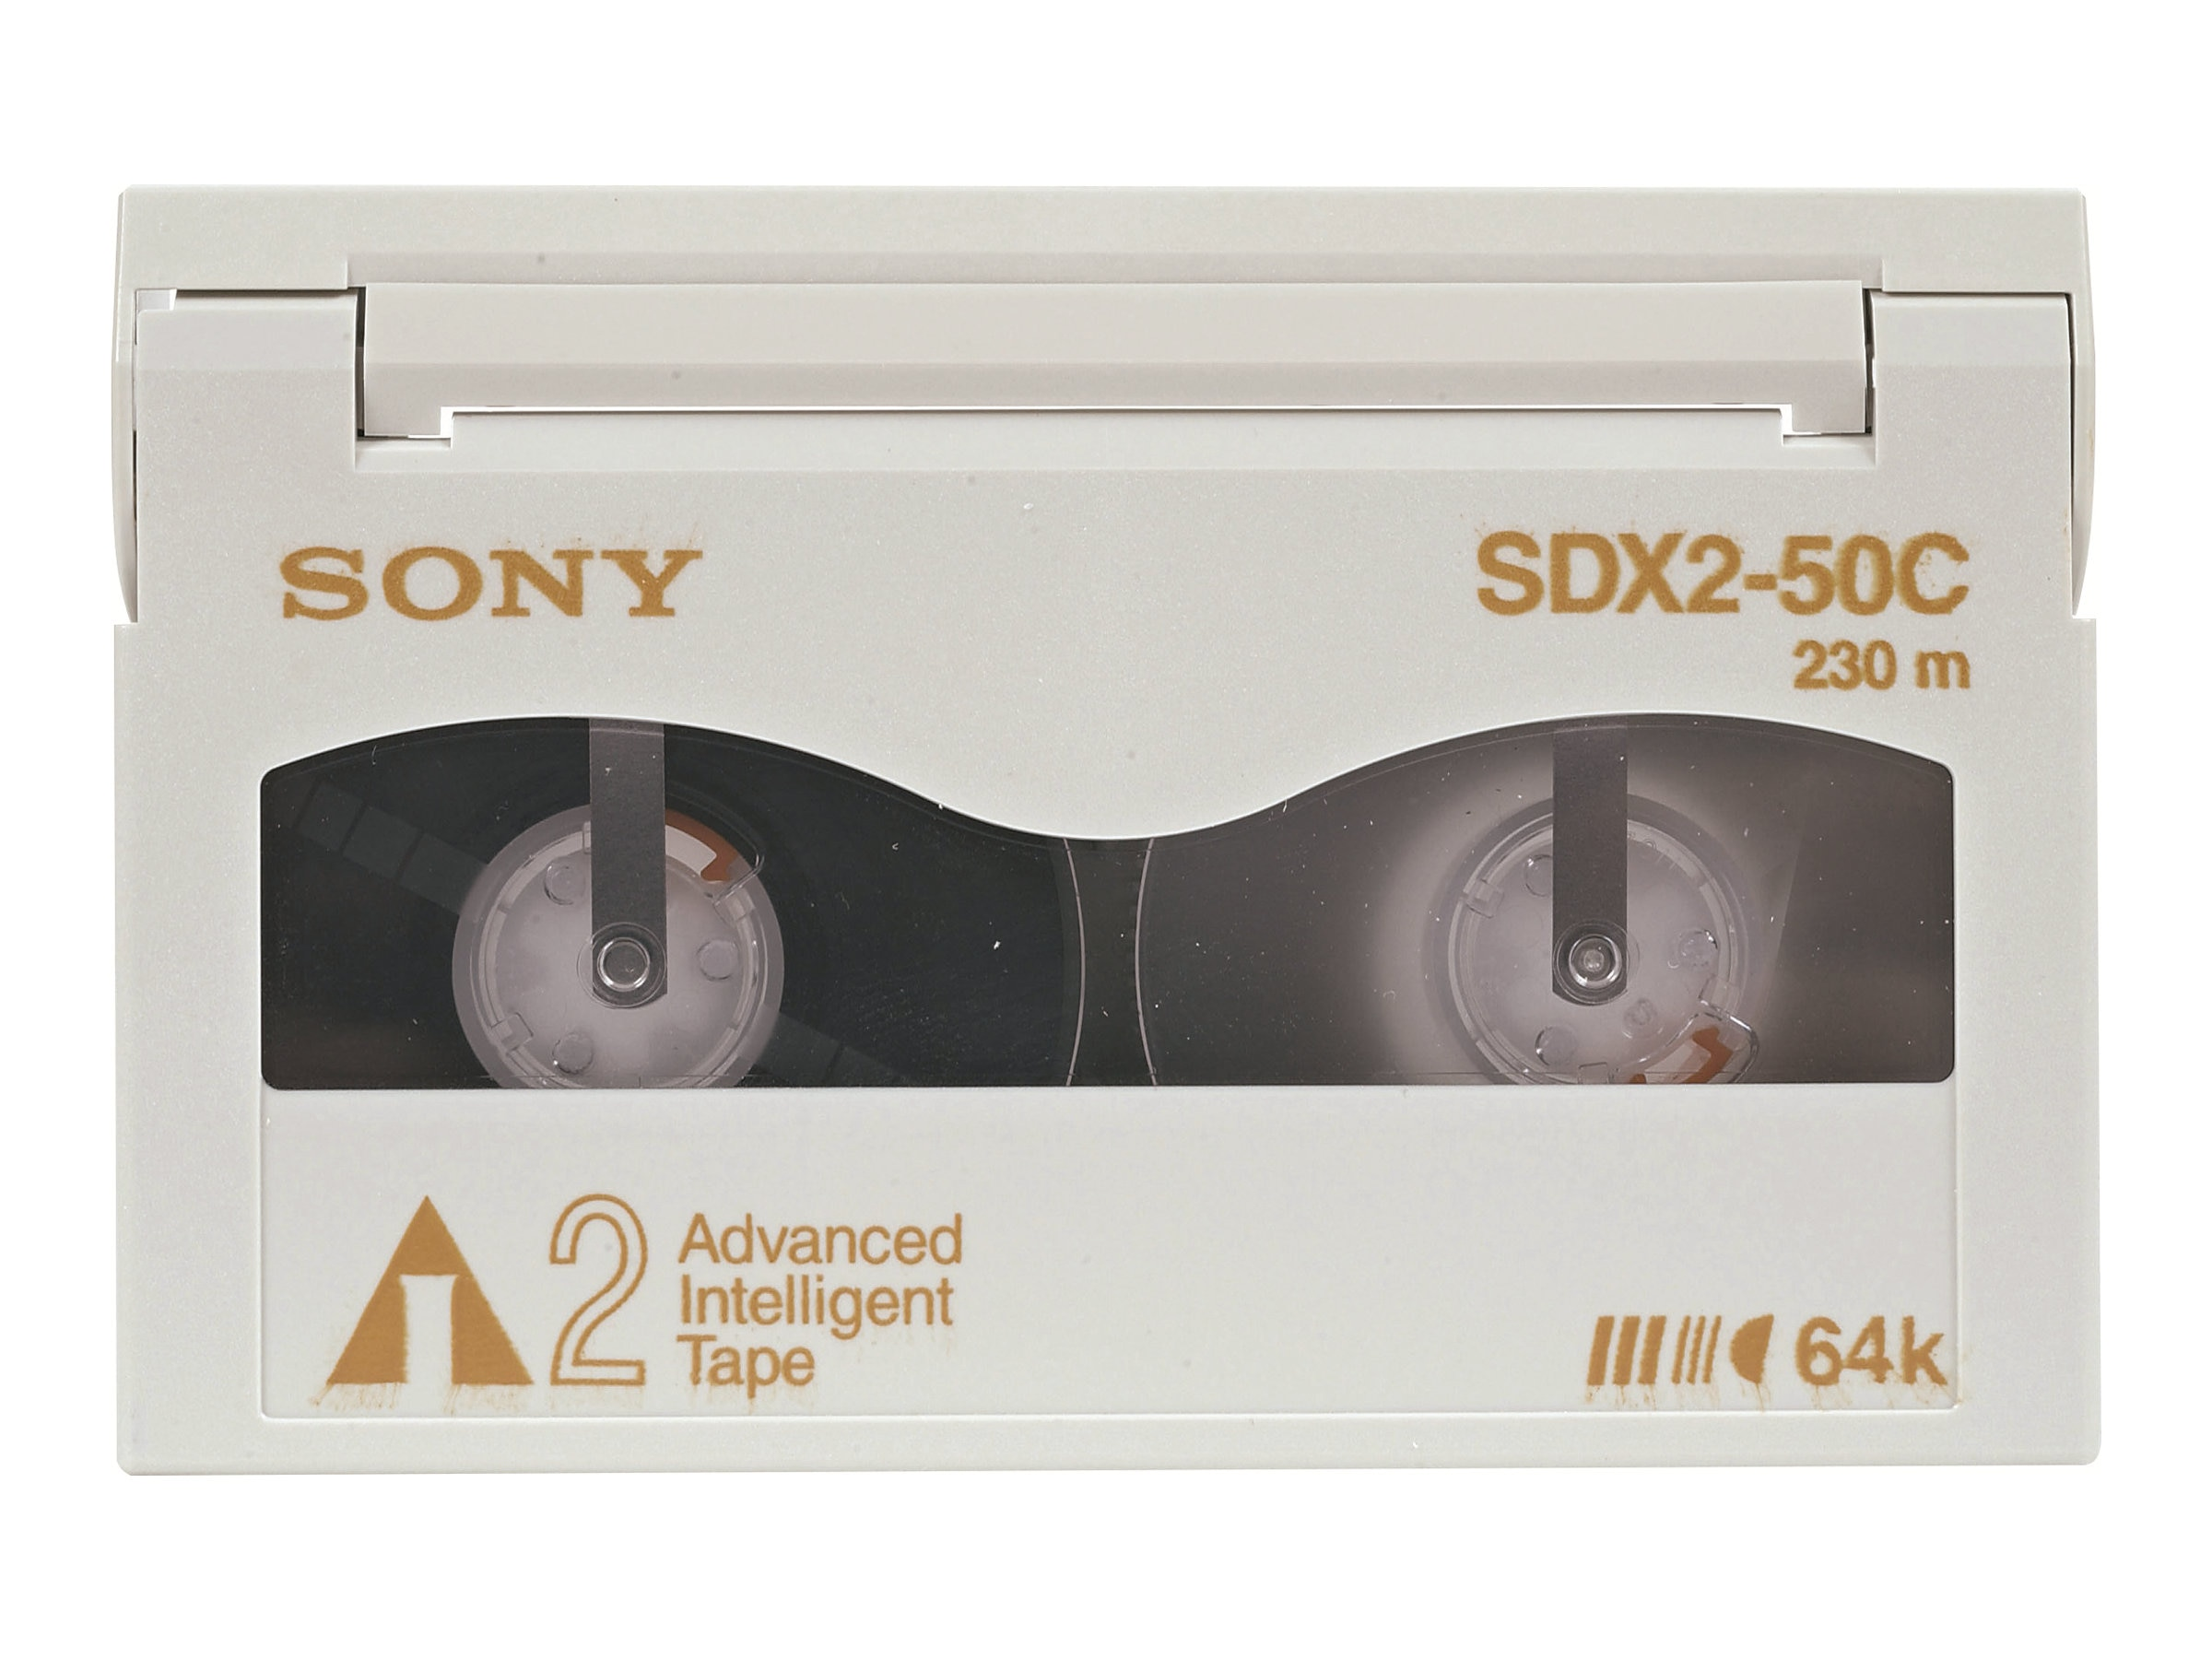 Sony 50 100GB AIT-2 8mm 230m Data Cartridge, SDX-250C, 154031, Tape Drive Cartridges & Accessories